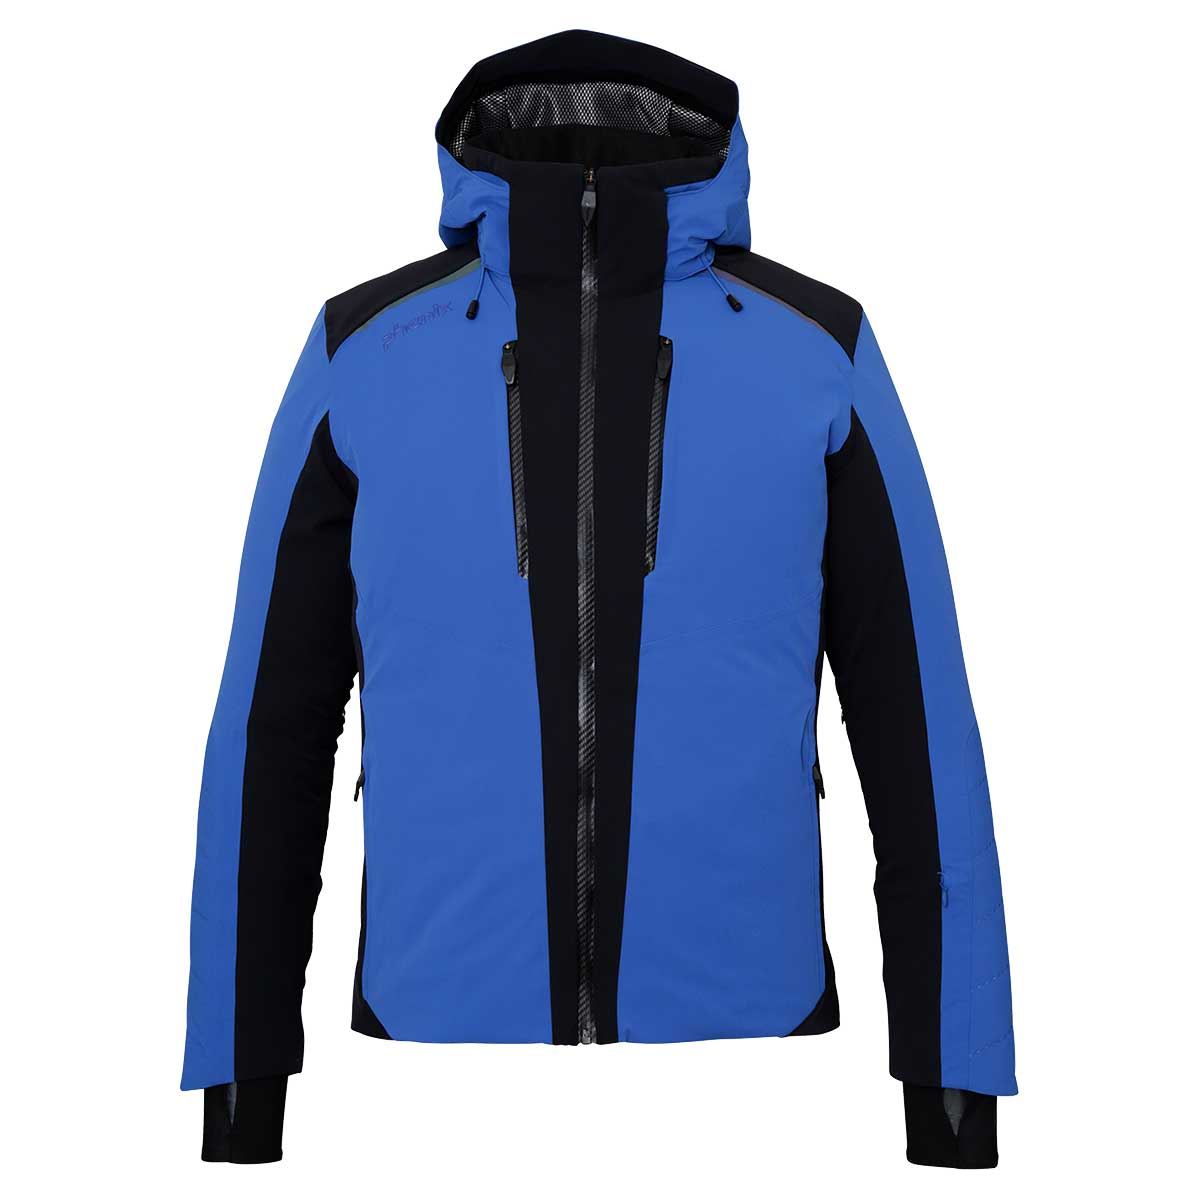 Phenix men's Wing Jacket in Blue and Black main view